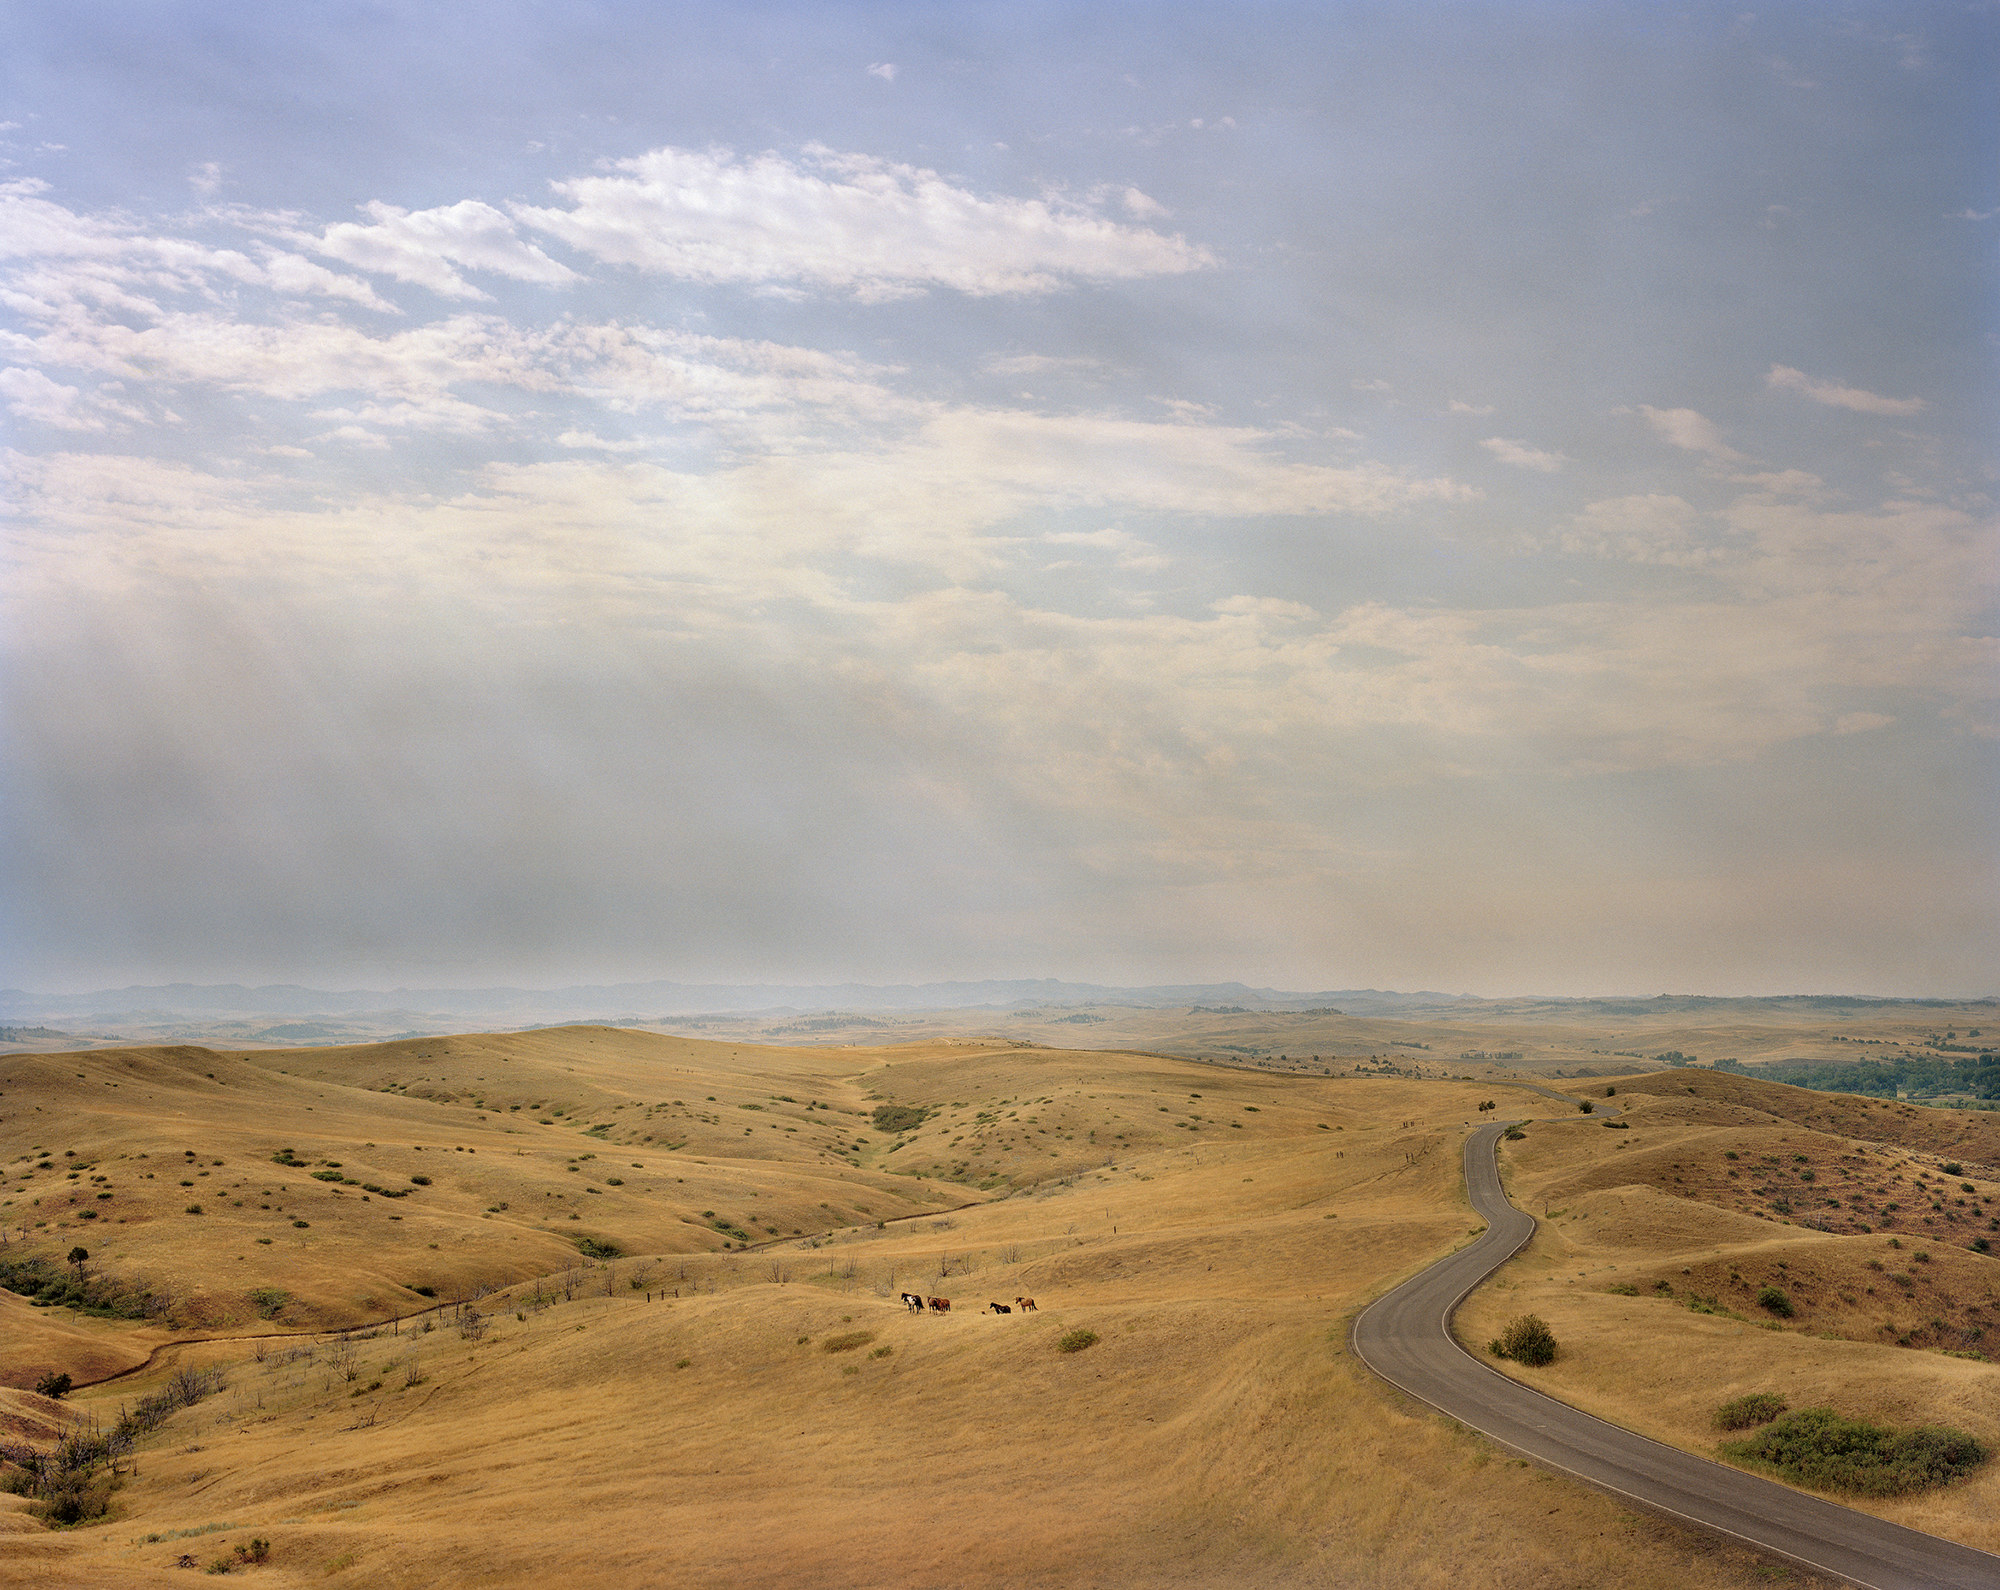 Horses appear as small images against a backdrop of highway and arid land